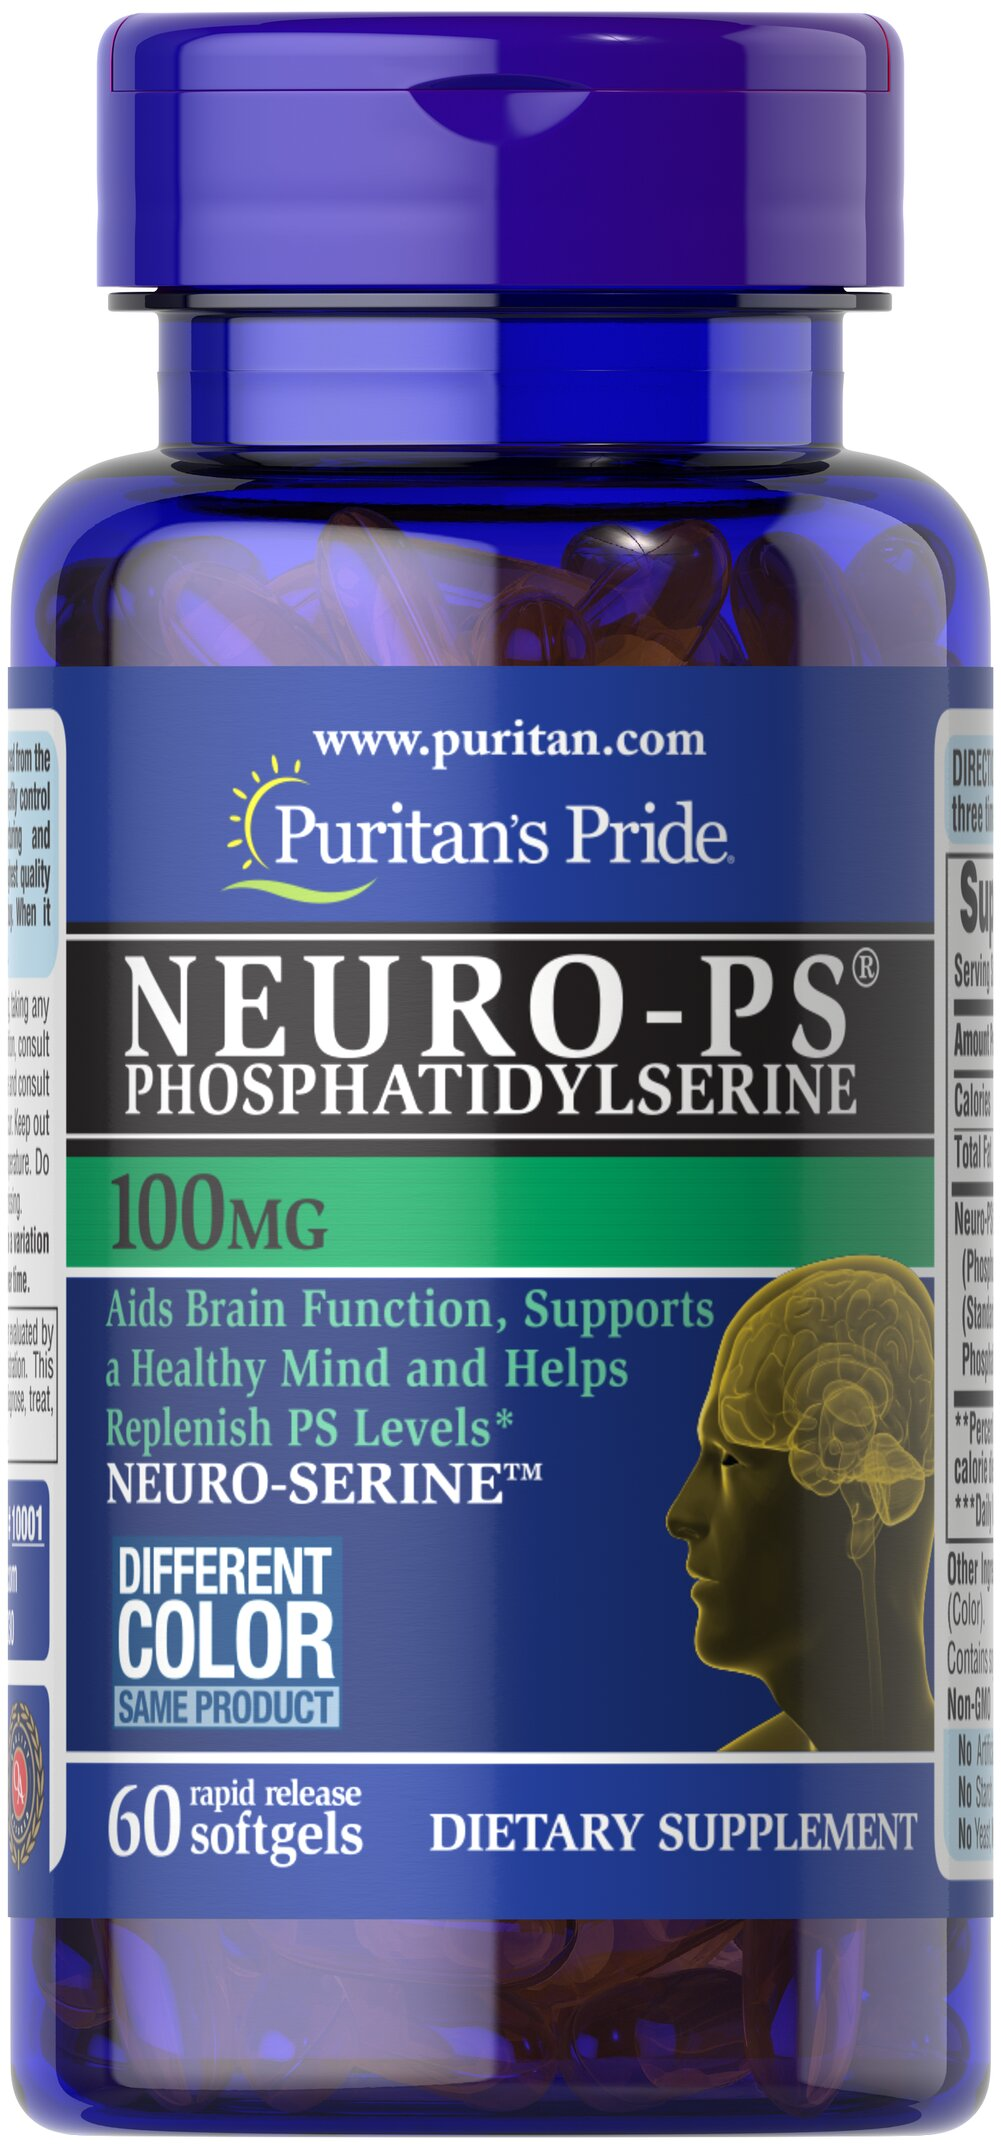 Neuro-PS (Phosphatidylserine) 100 mg  60 Softgels 100 mg $34.99